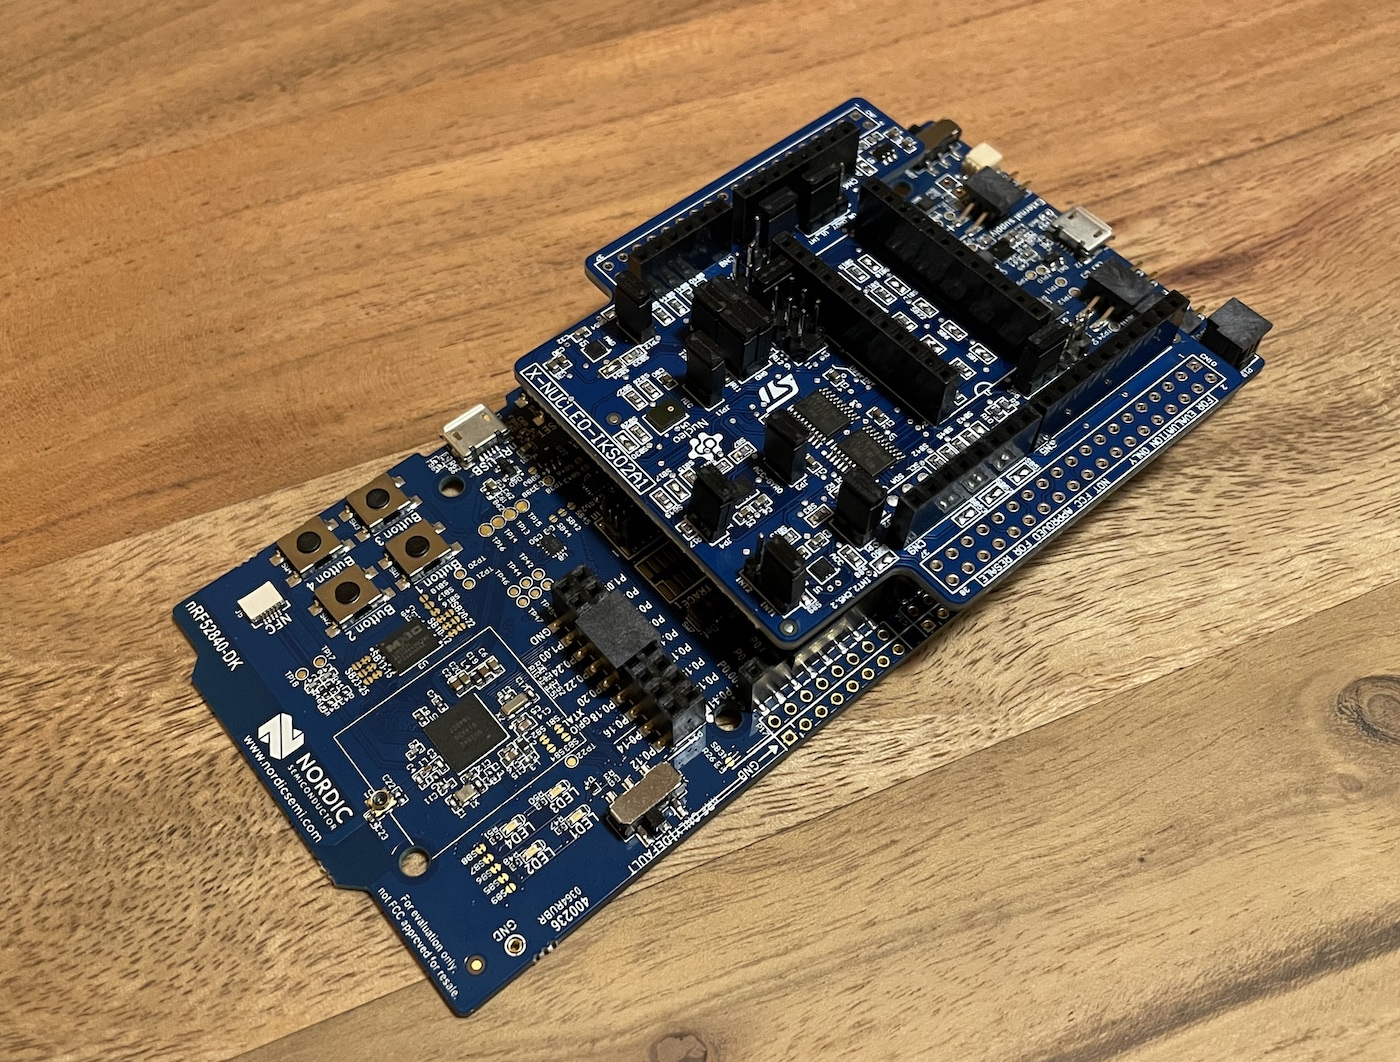 X-NUCLEO-IKS02A1 shield plugged in to the nRF52840 DK